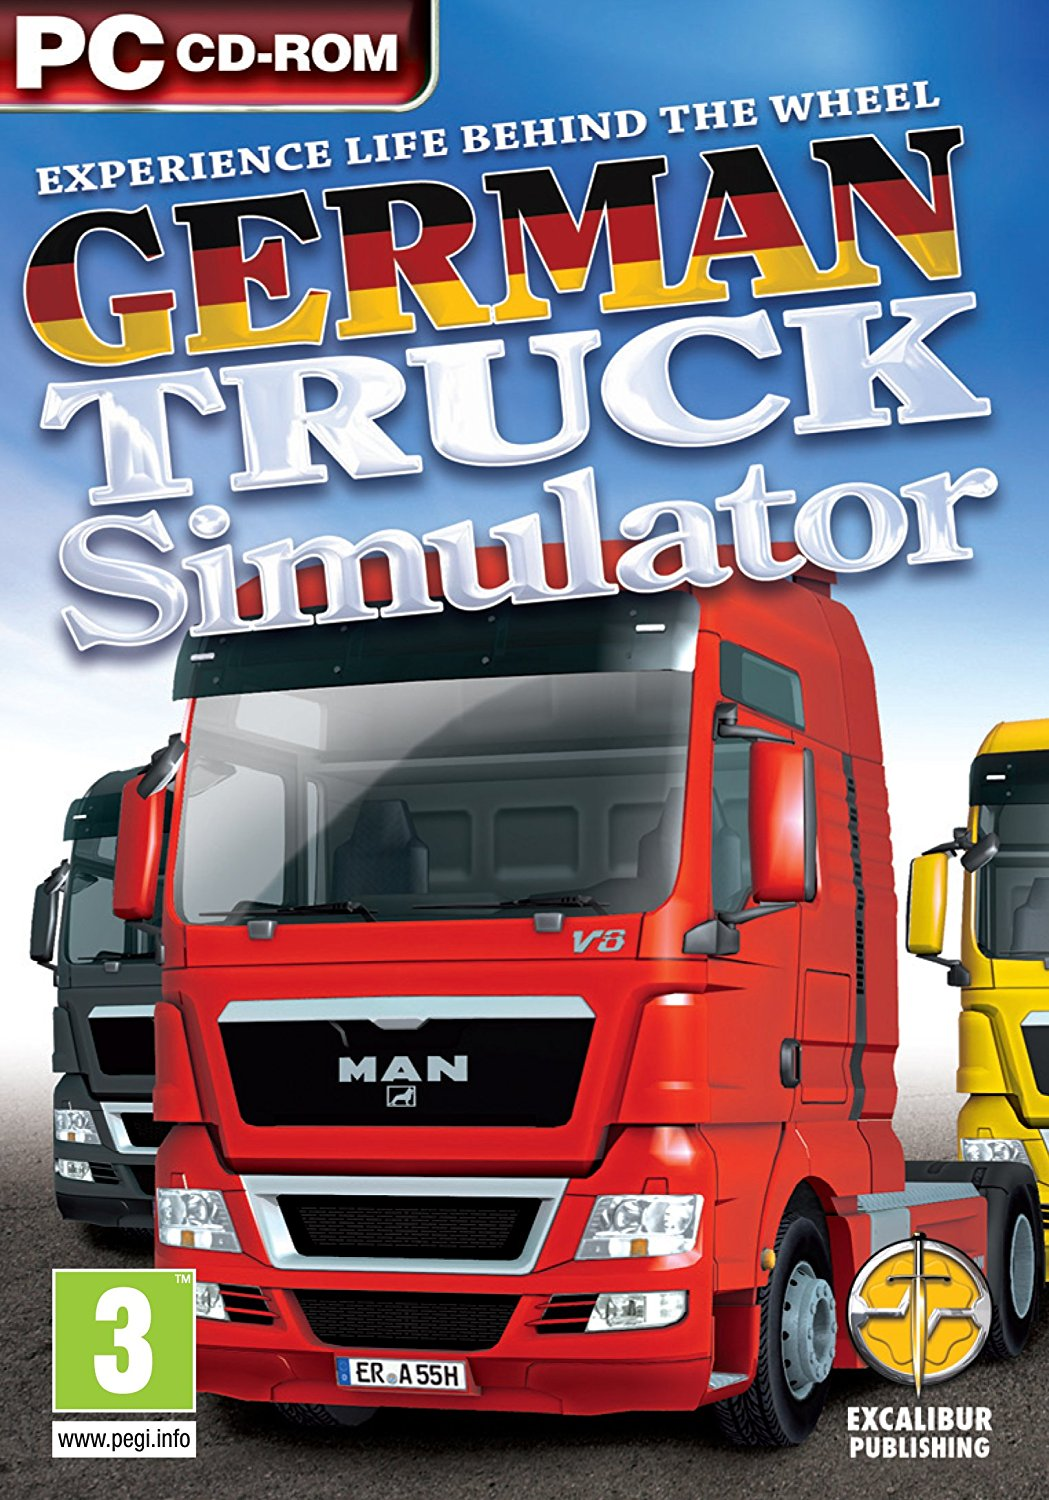 German Truck Simulator (video game)